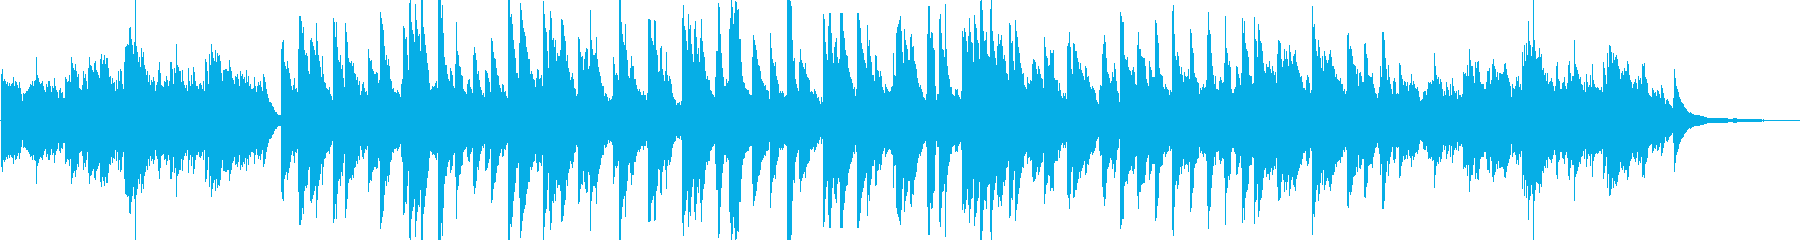 For seriousness, impression, image, narration's reproduced waveform